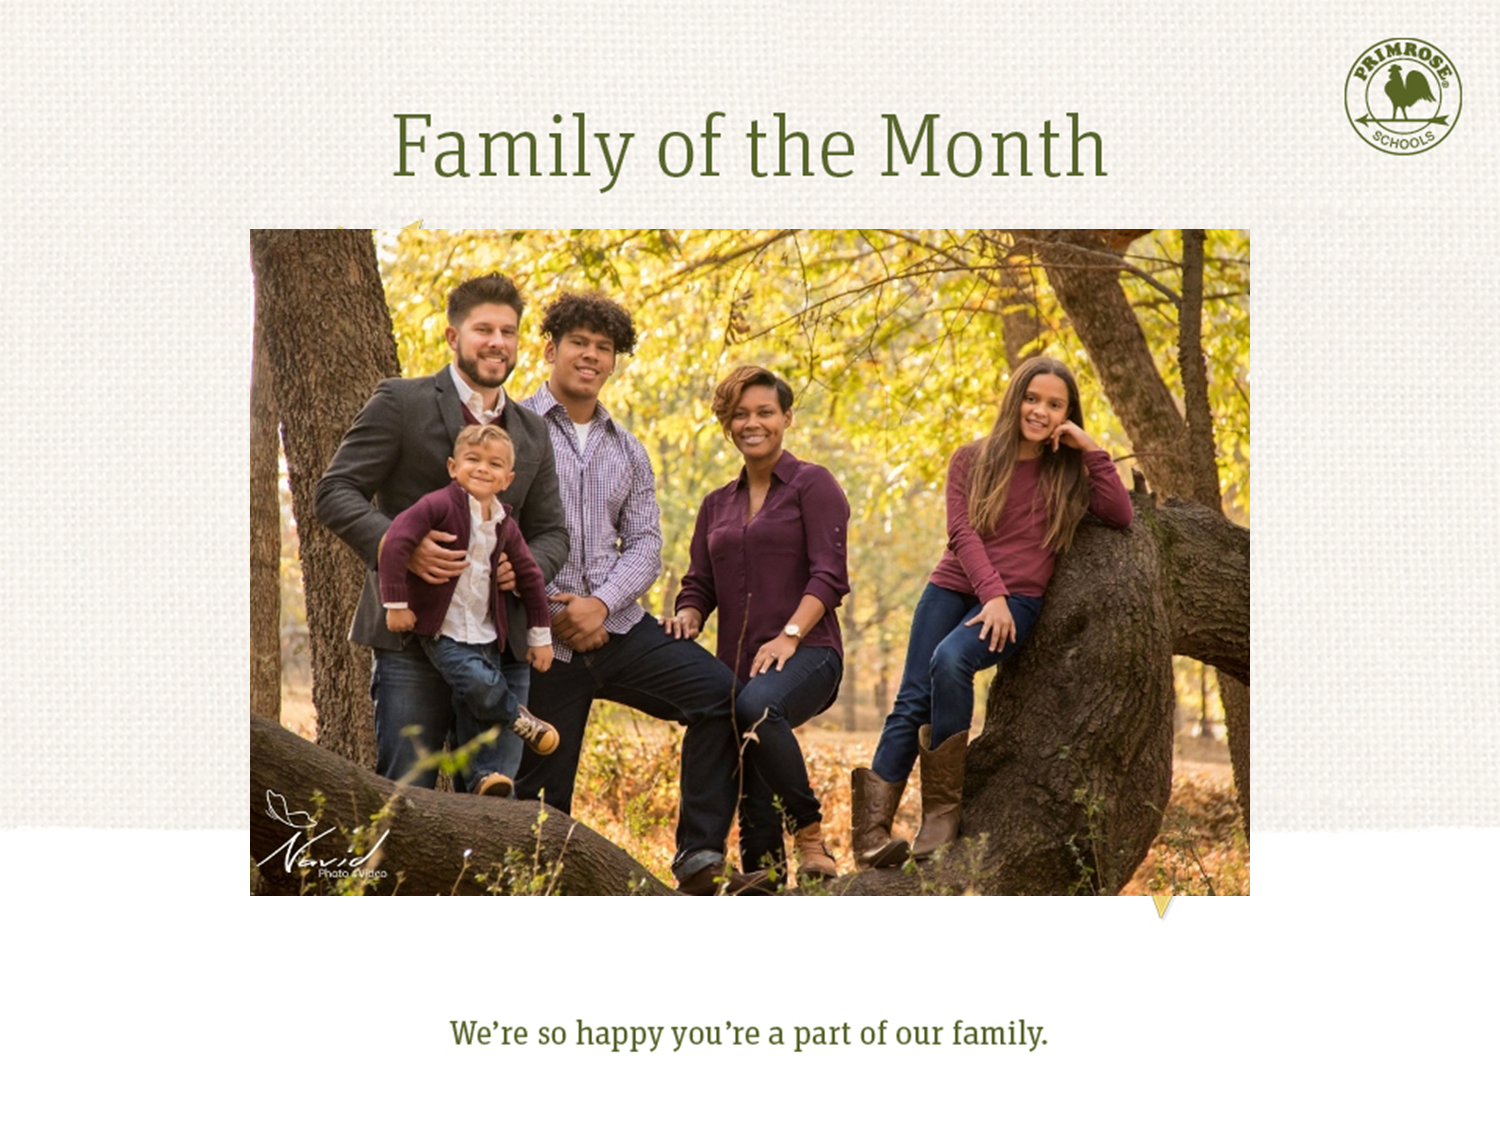 The Zambino family, family of the month for March